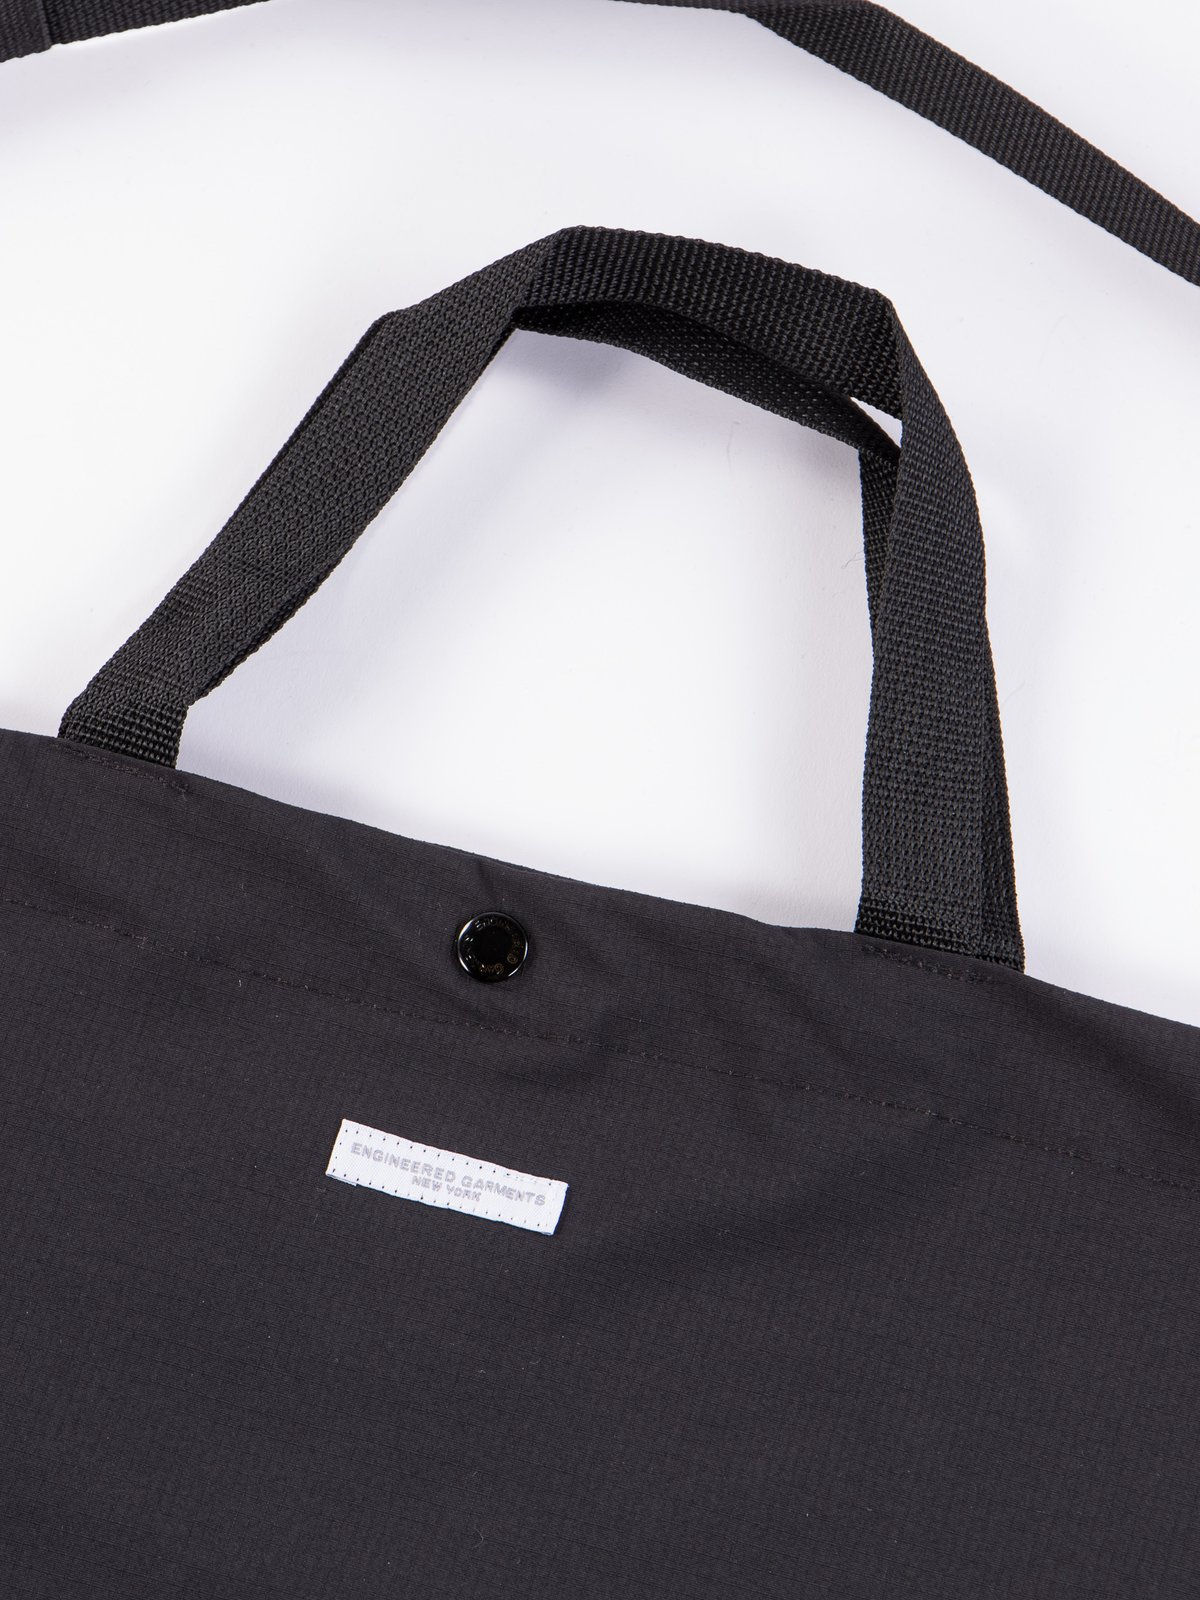 Black Tech Cotton Ripstop Carry All Tote - Image 2